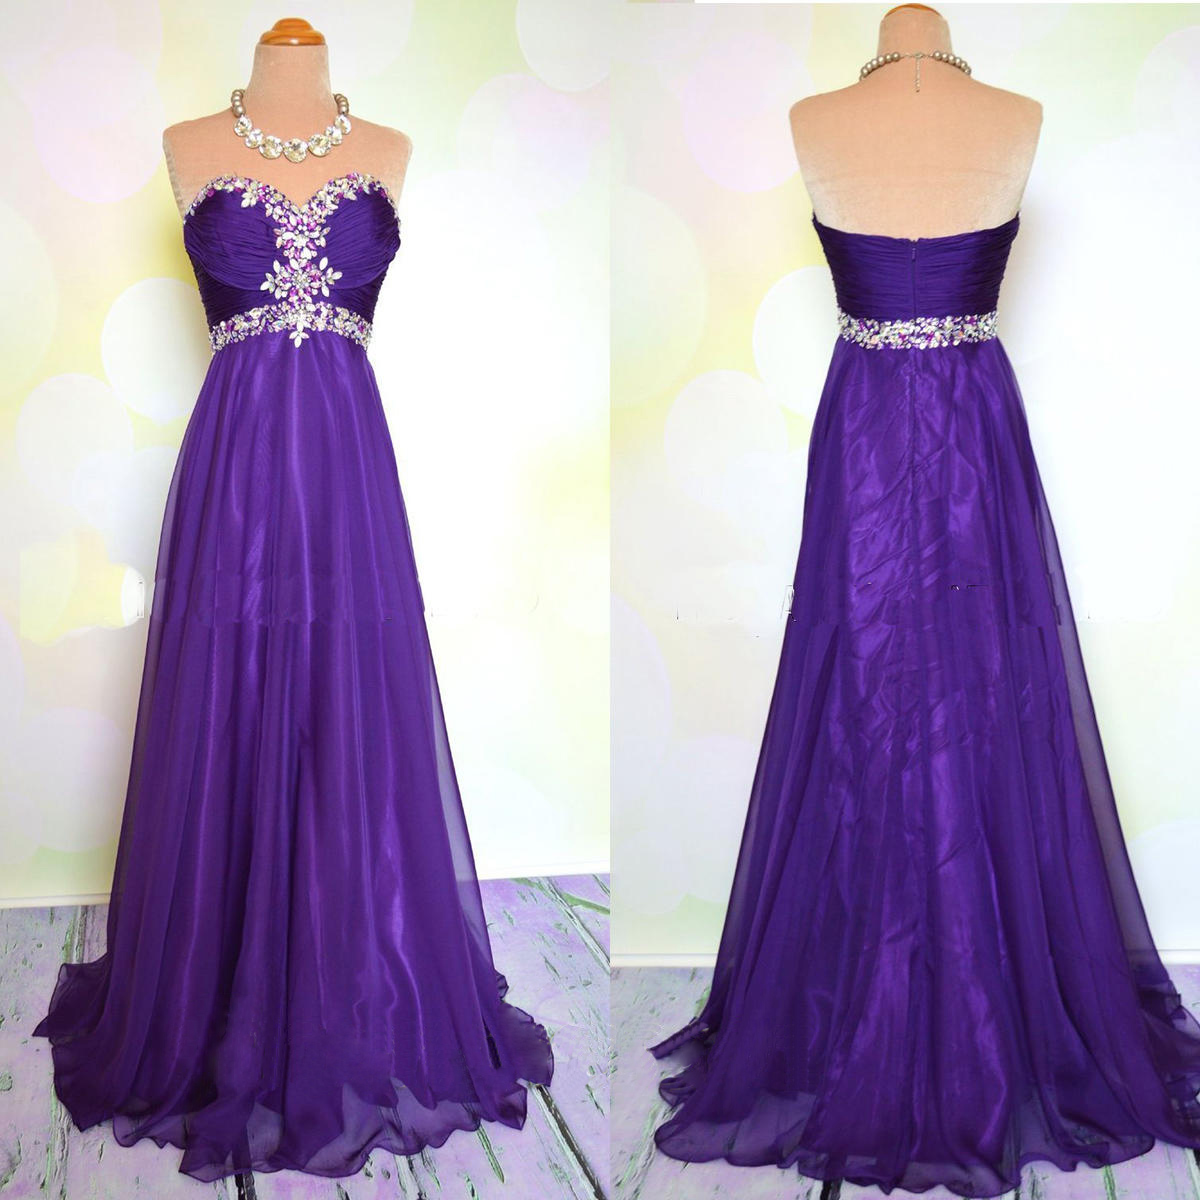 Elegant Long Purple Prom Dress, Chiffon Prom Dresses, Cheap Formal Dresses, Vestido De Festa, Sparkly Prom Dress, Evening Gowns